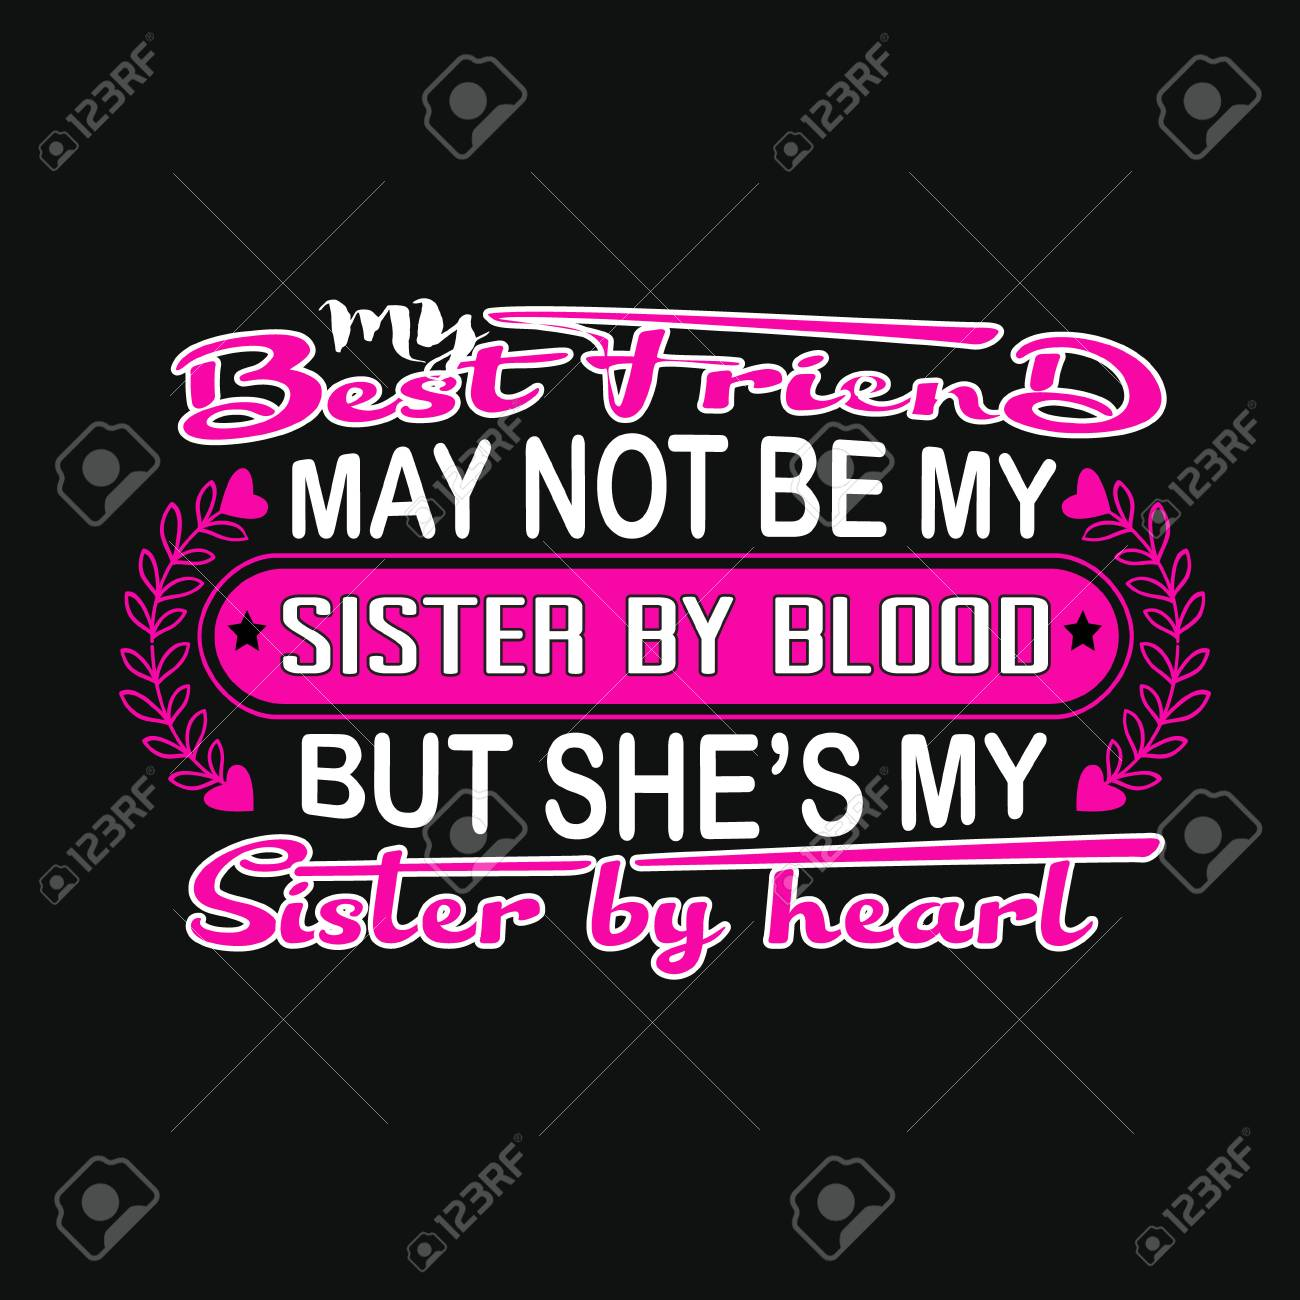 Friendship Quote and saying. My best friend may not be my sister..